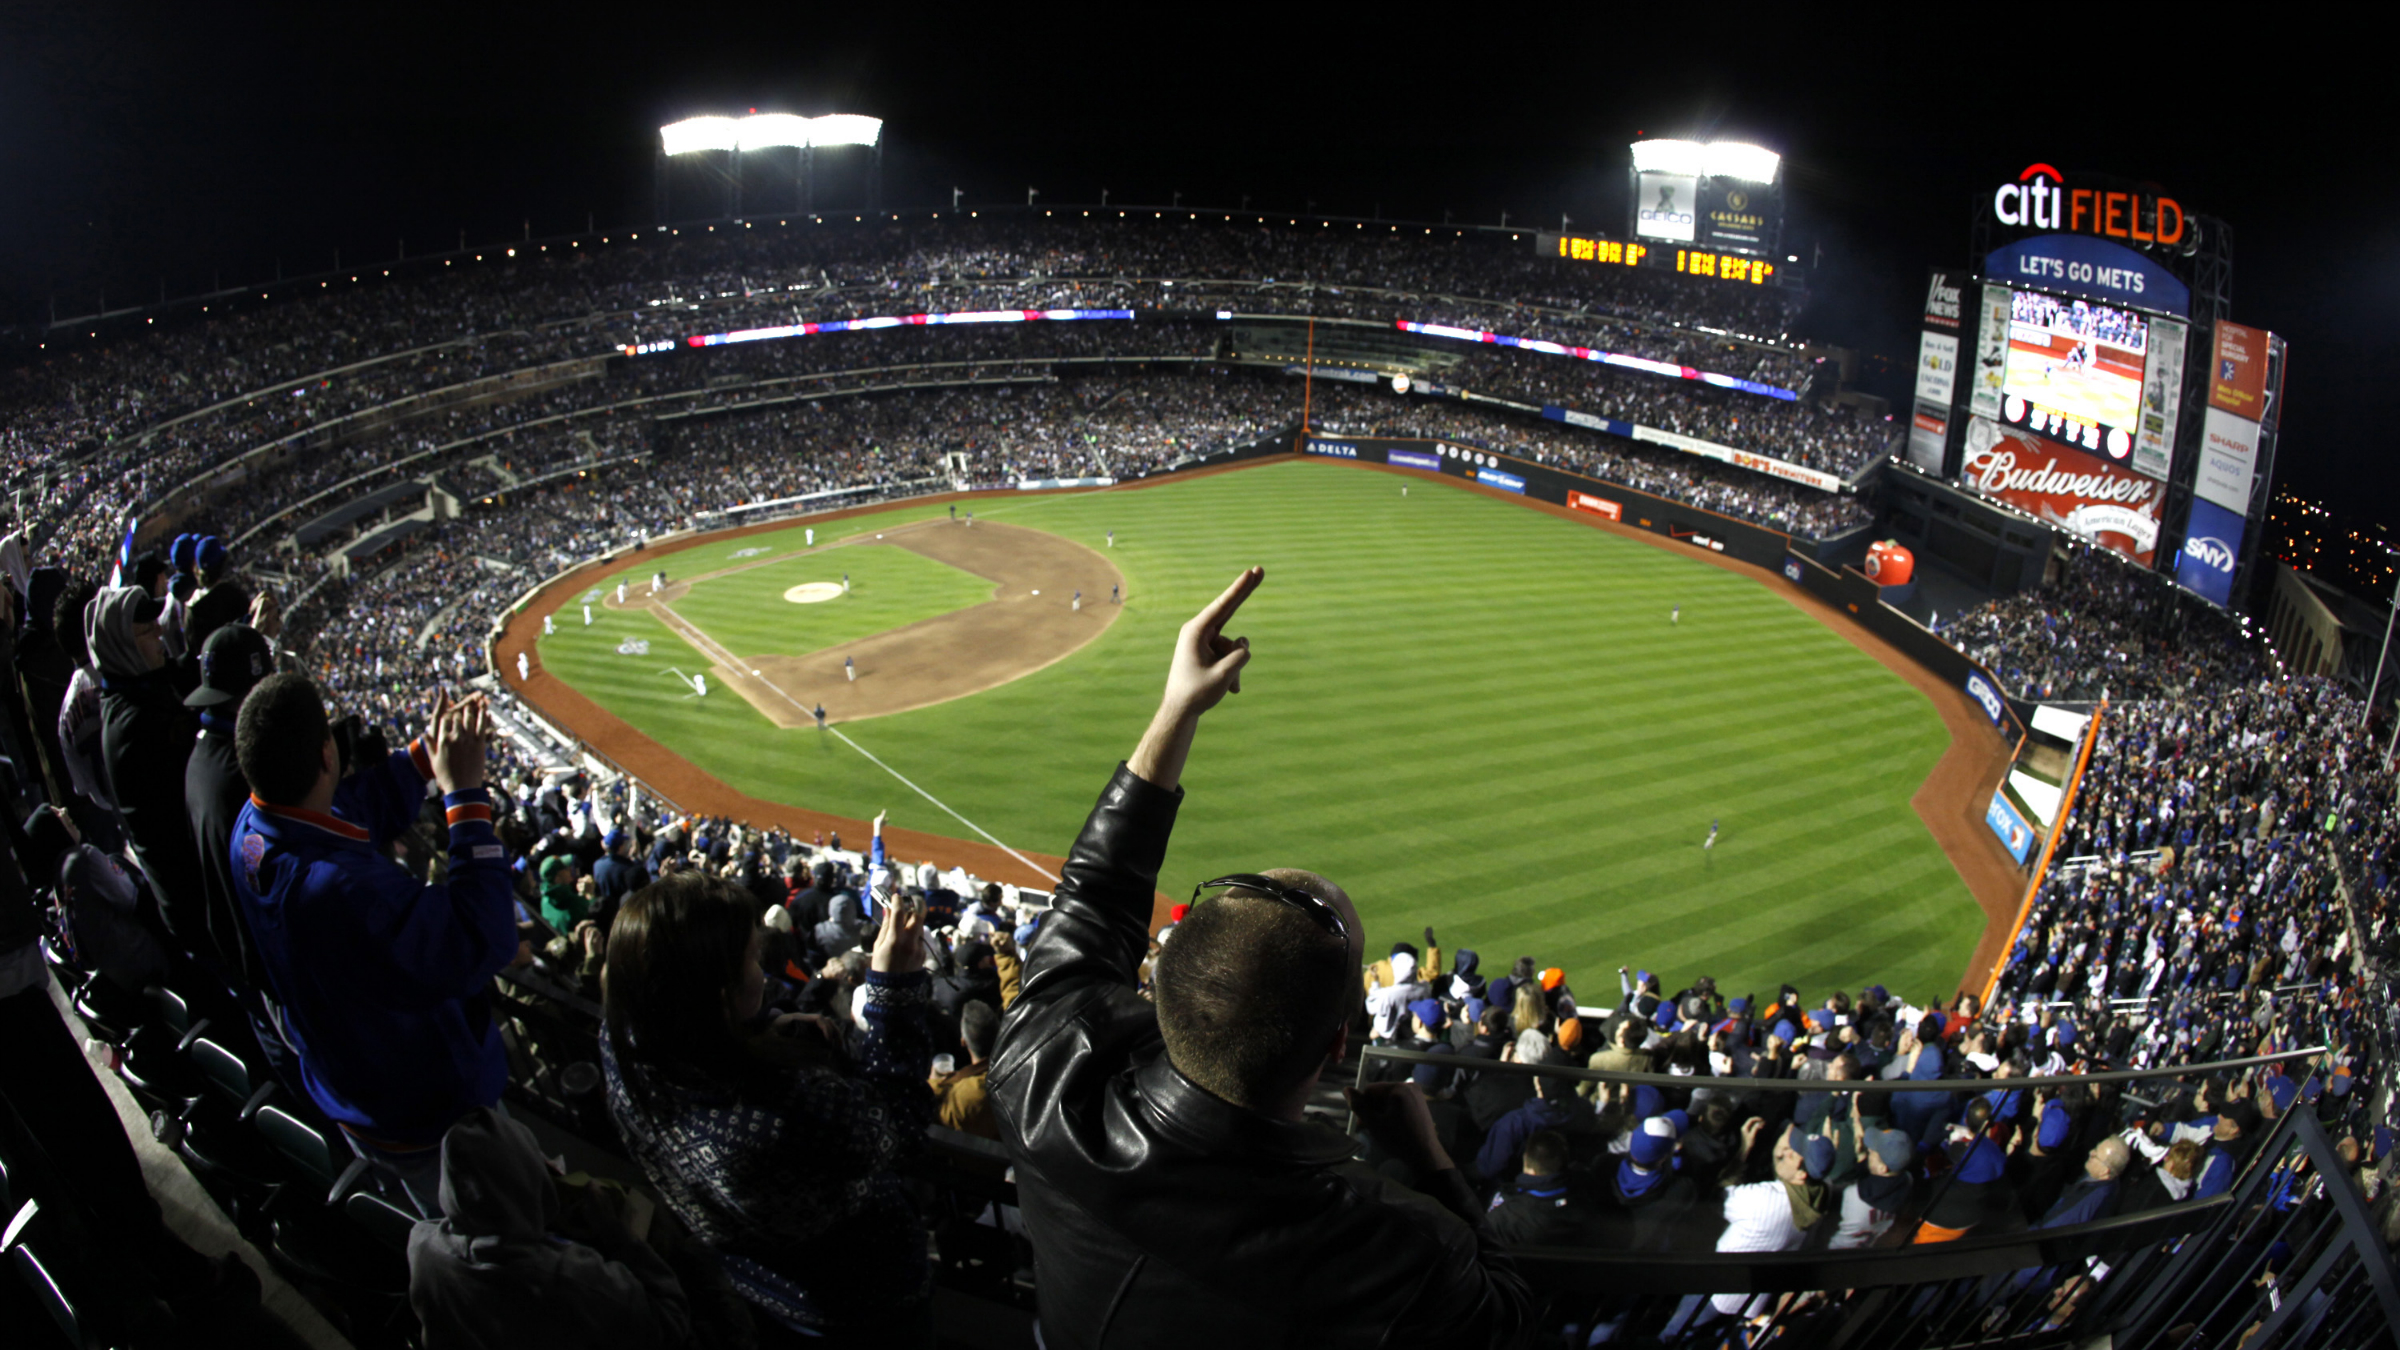 New York Mets fan Michael Zinn of tyhe Staten Island borough of New York cheers David Wright's fifth-inning three-run home run against the San Diego Padres in the first regular season baseball game at Citi Field, on Monday, April 13, 2009, in New York. (AP Photo/Julie Jacobson)